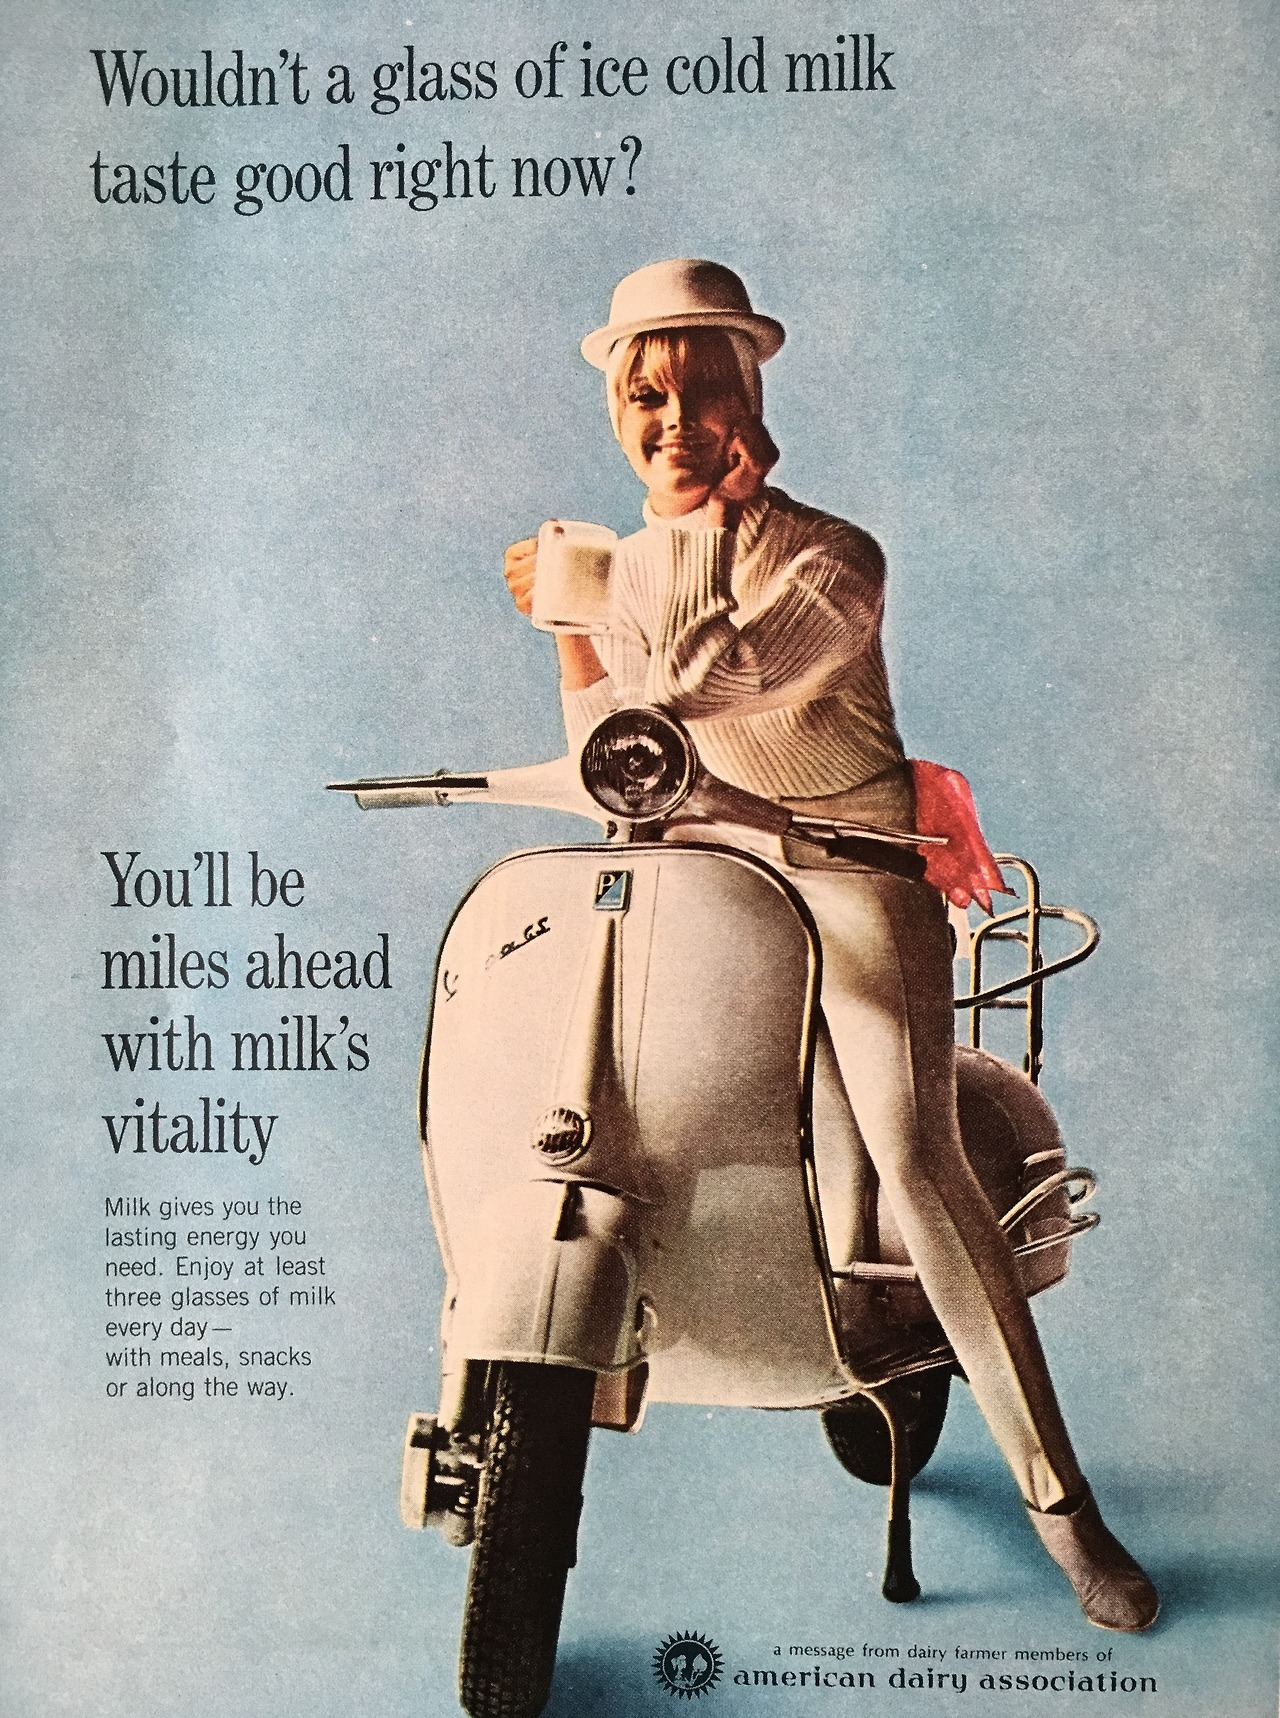 """Wouldn't a glass of ice cold milk taste good right now?"" American Dairy Association ad. Appeared in Co-ed Magazine. April 1966."